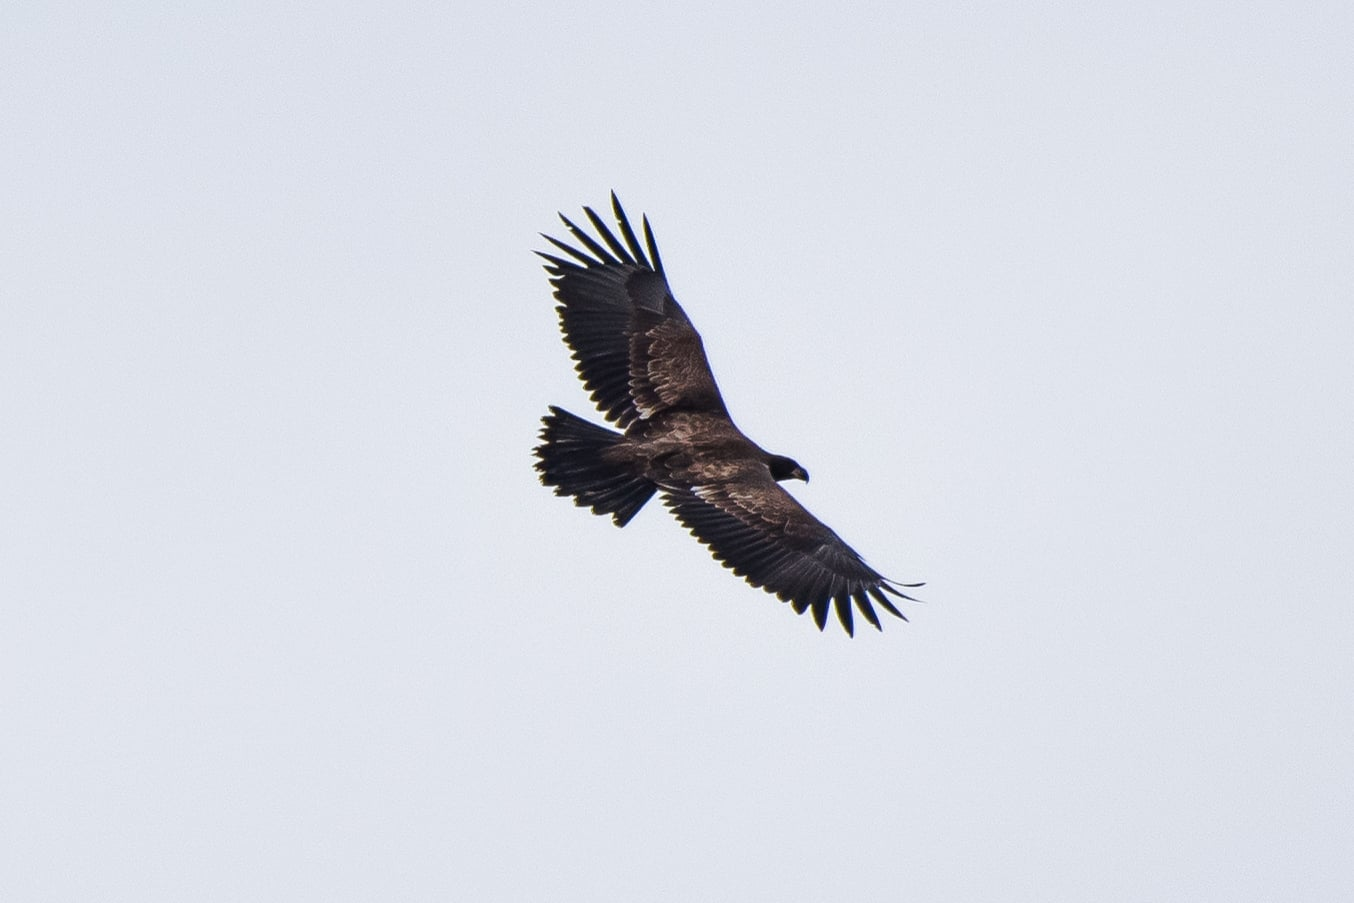 An immature bald eagle soars over northern Quabbin today.